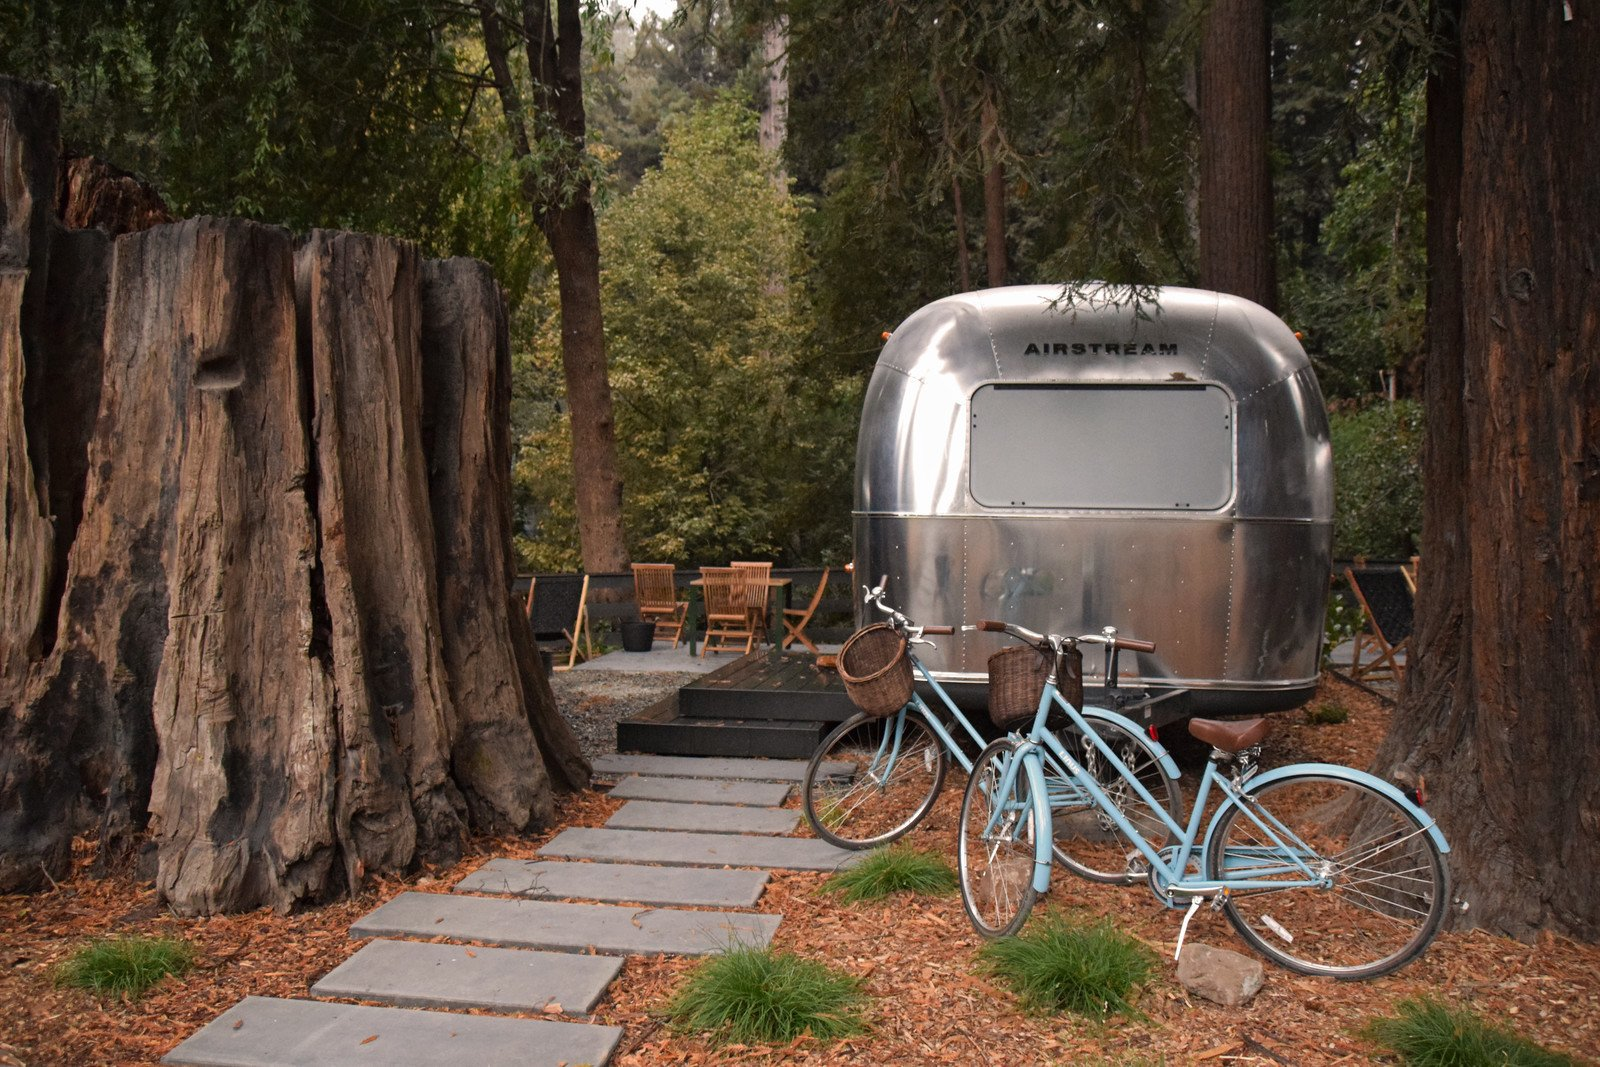 Photo 3 of 8 in 7 Vintage-Inspired Trailer Parks, Airstreams and All